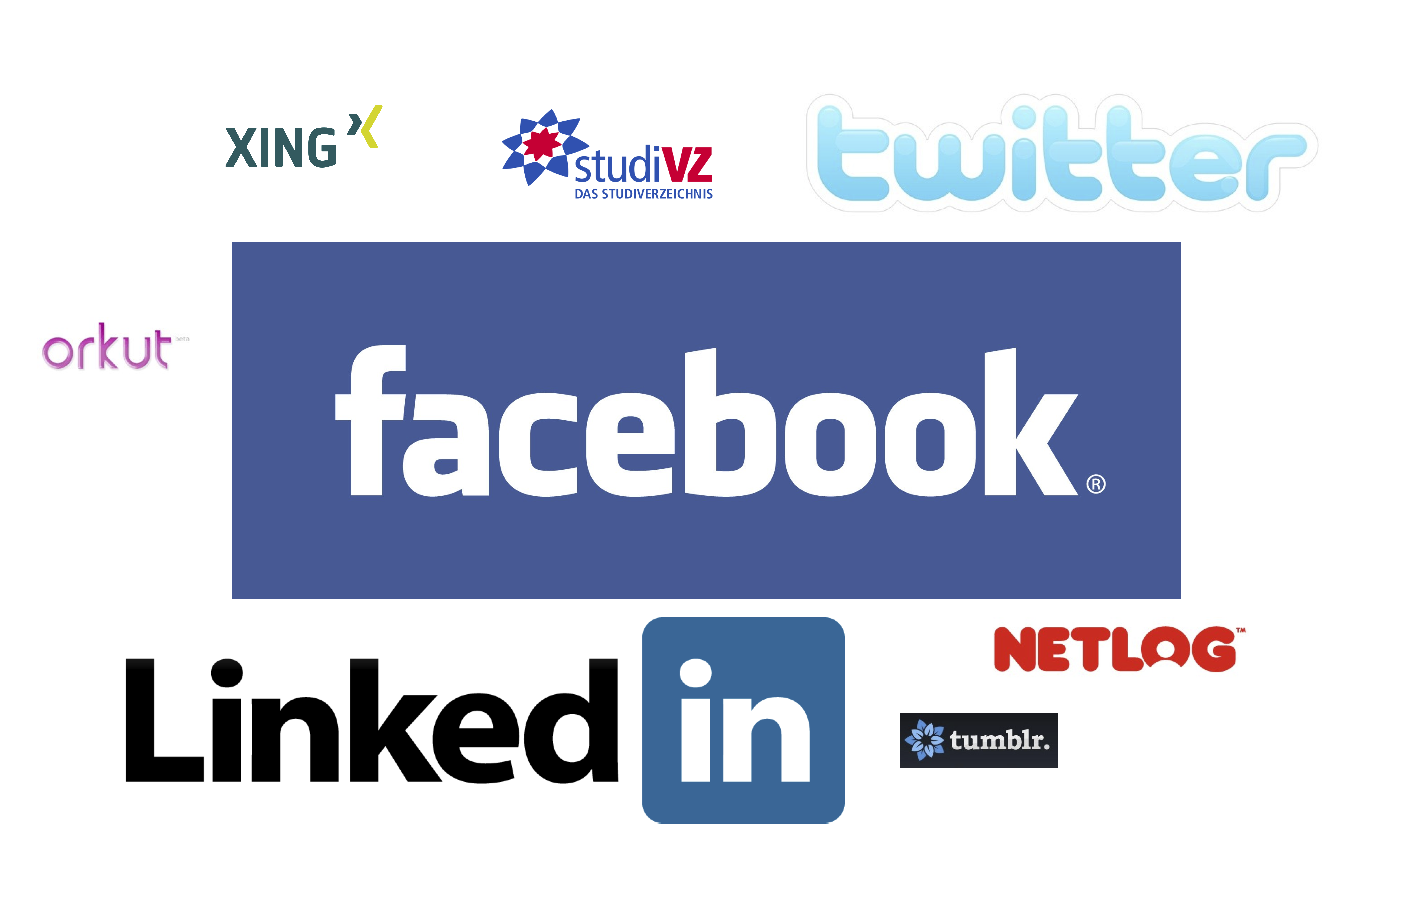 Popular Social Networks (size indicates importance)